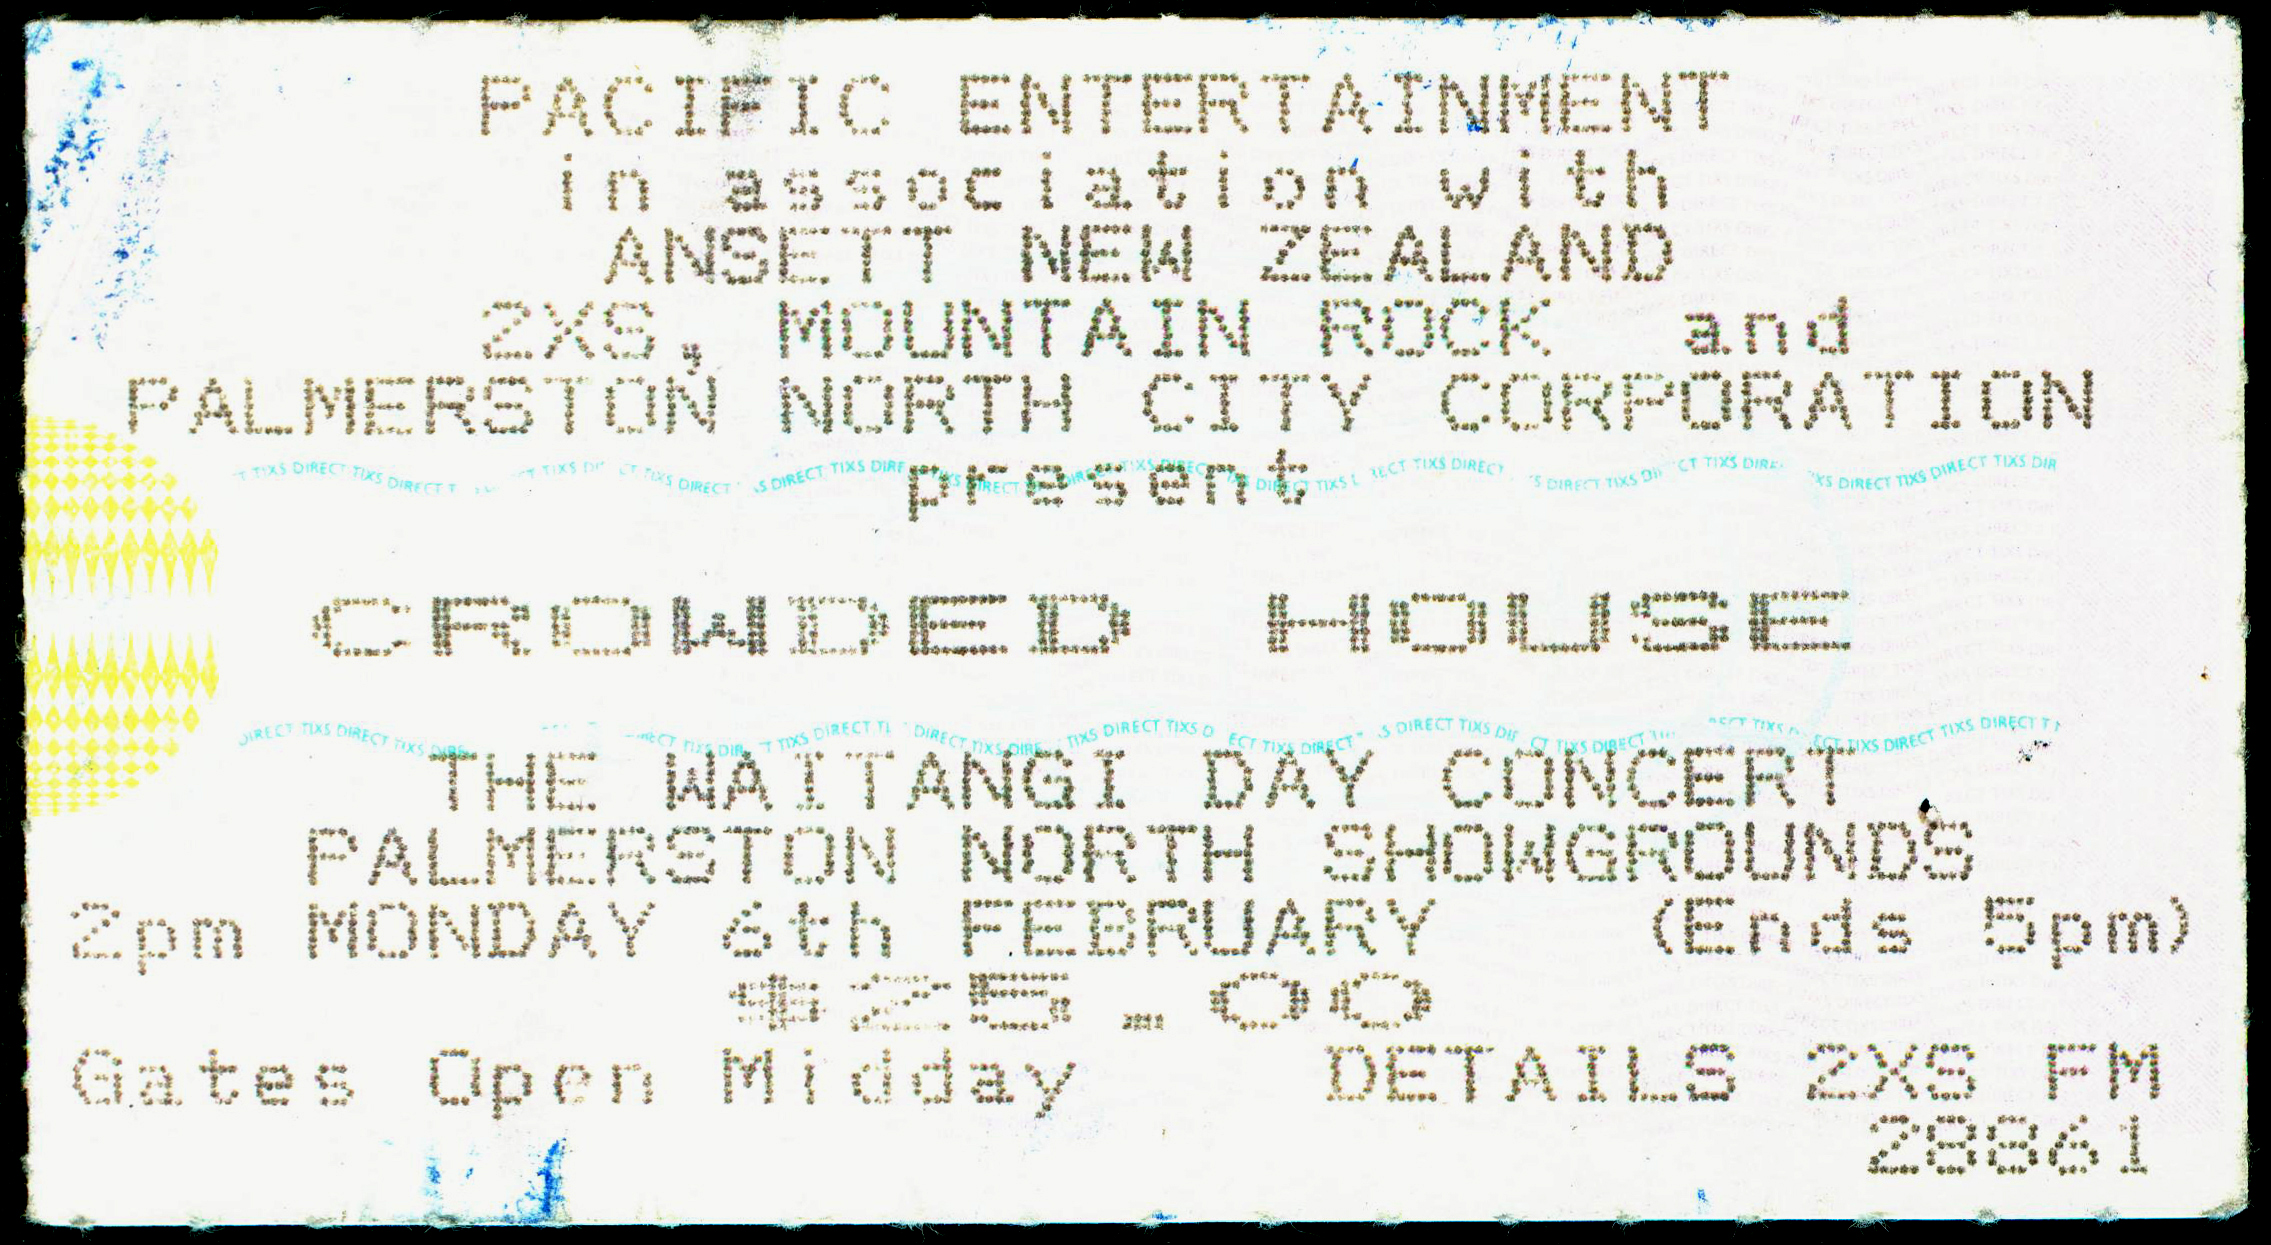 Crowded House-Palmerston North-New Zealand-6-Feb-1995-B-ticket-DC Cardwell